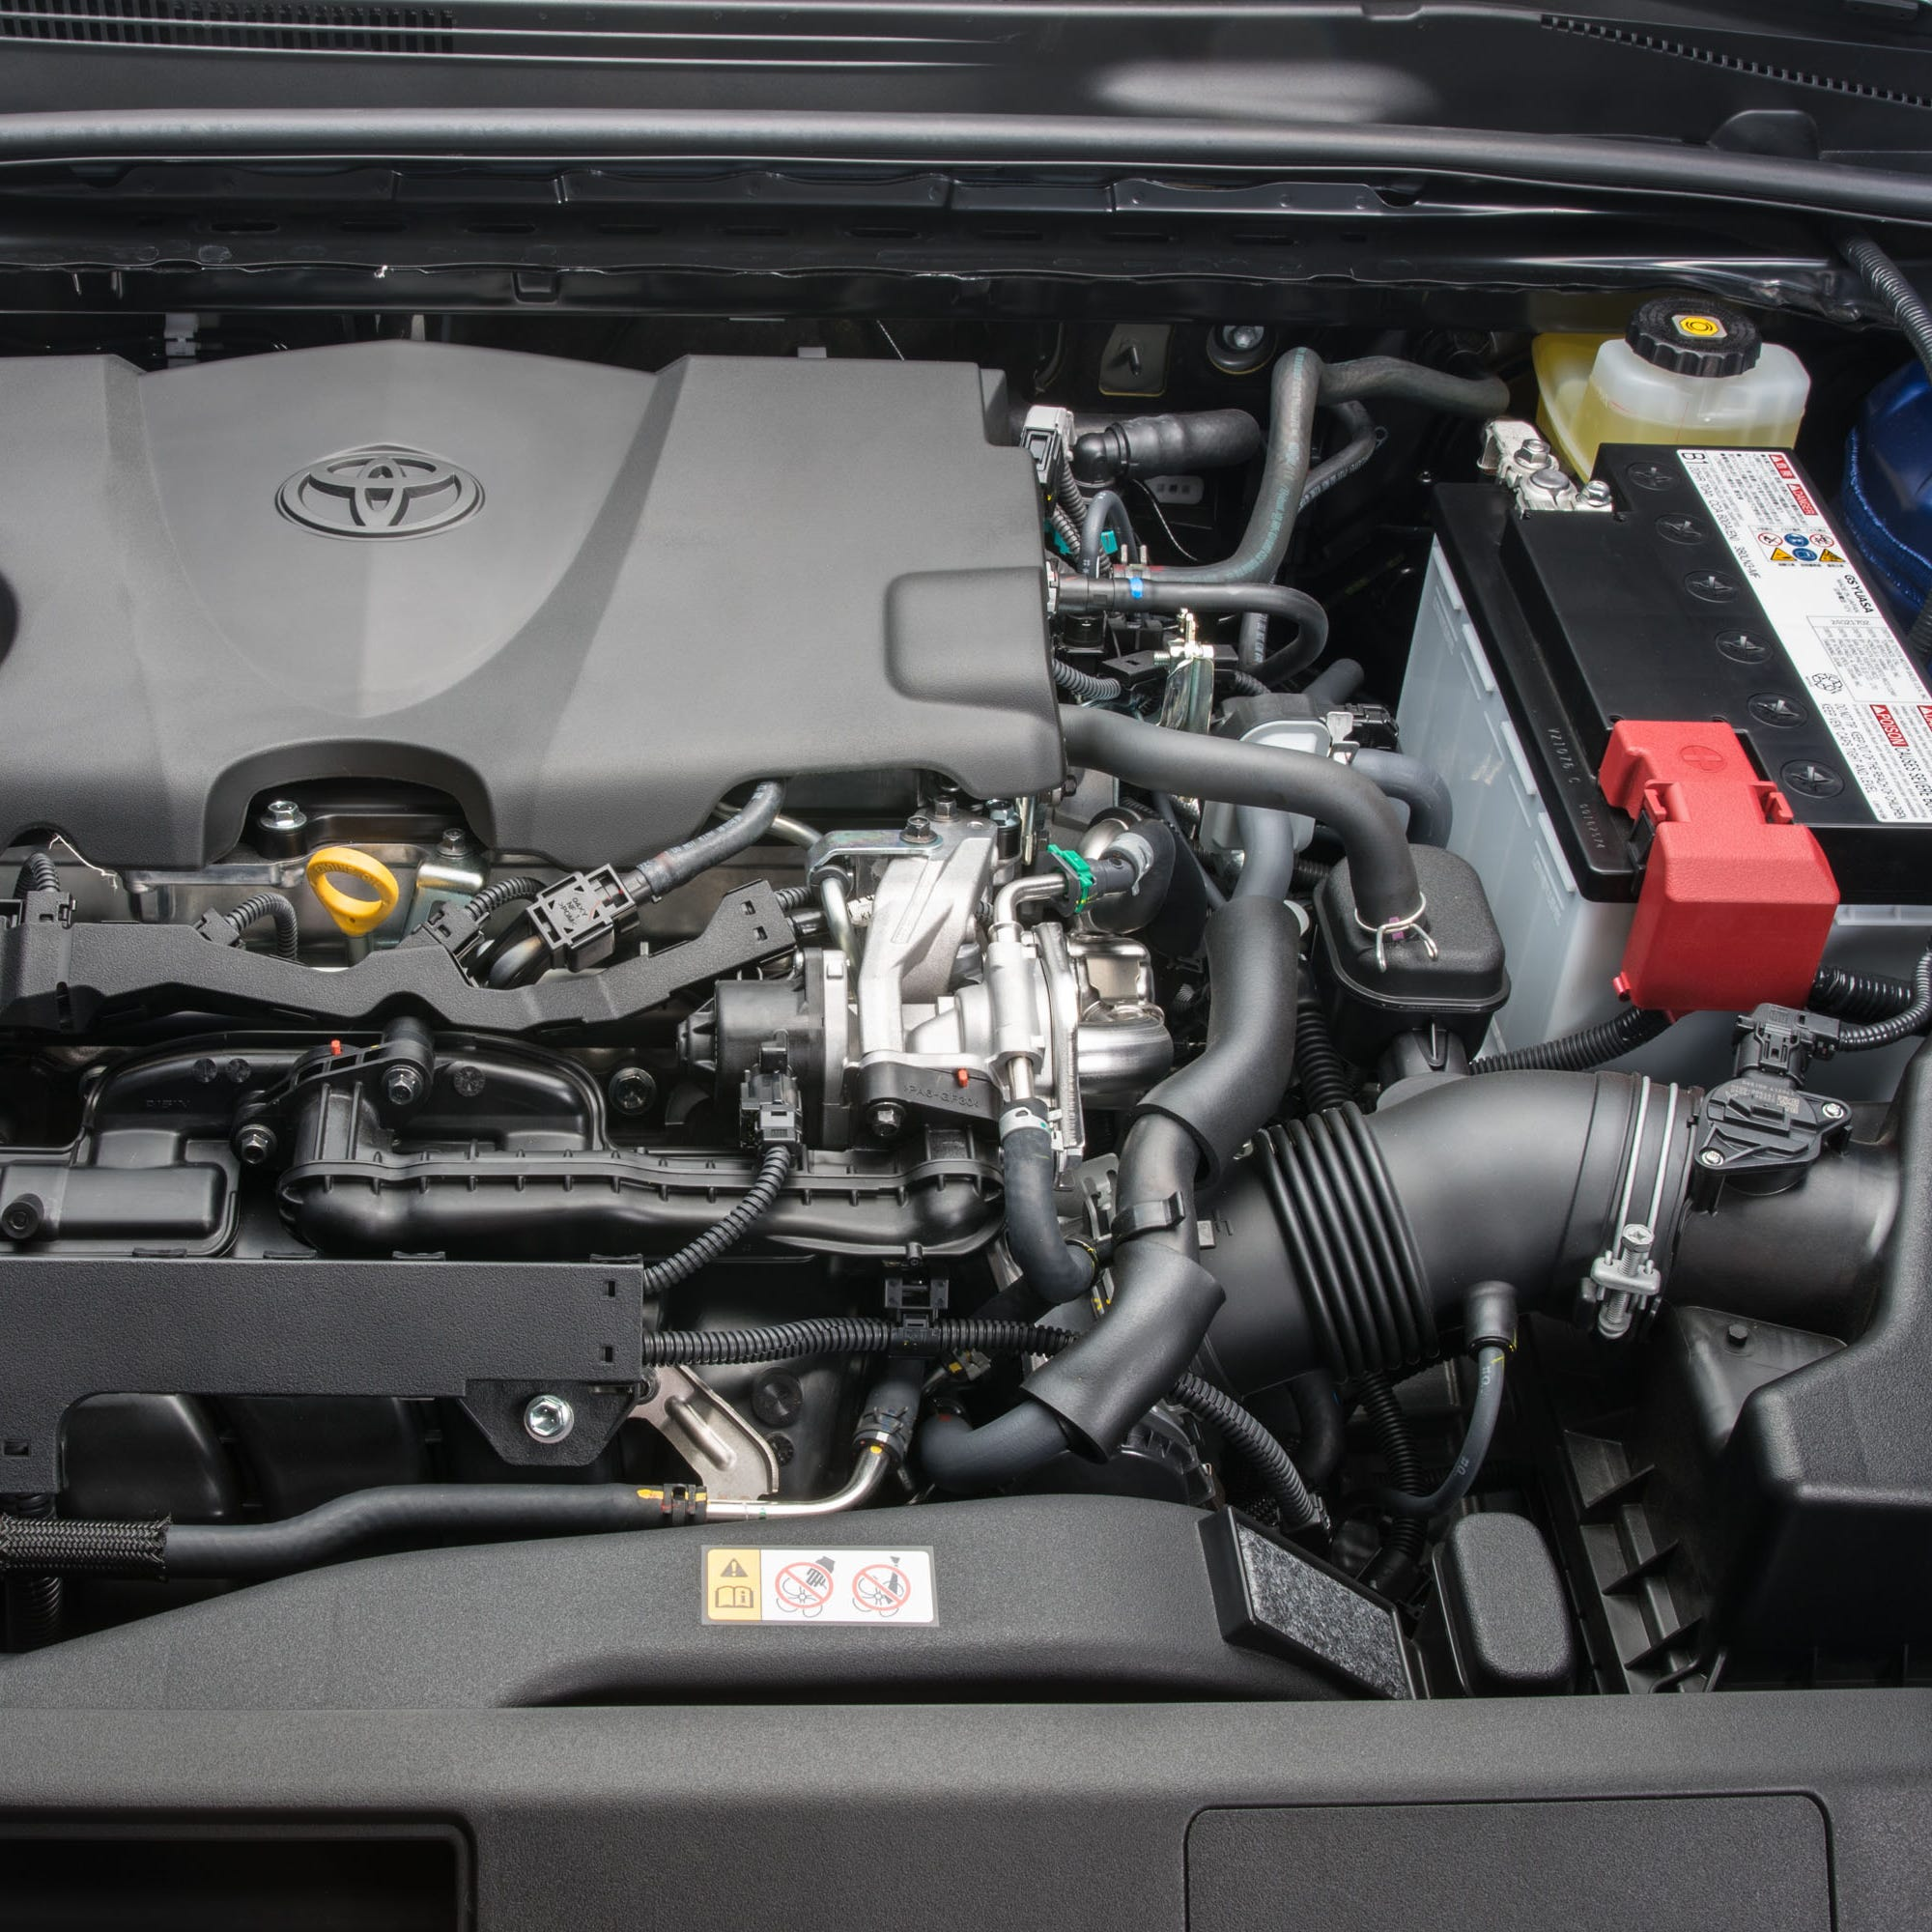 Toyota was the brand least likely to need check engine repairs over the past year according to CarMD. In the picture—2018 Toyota Camry LE